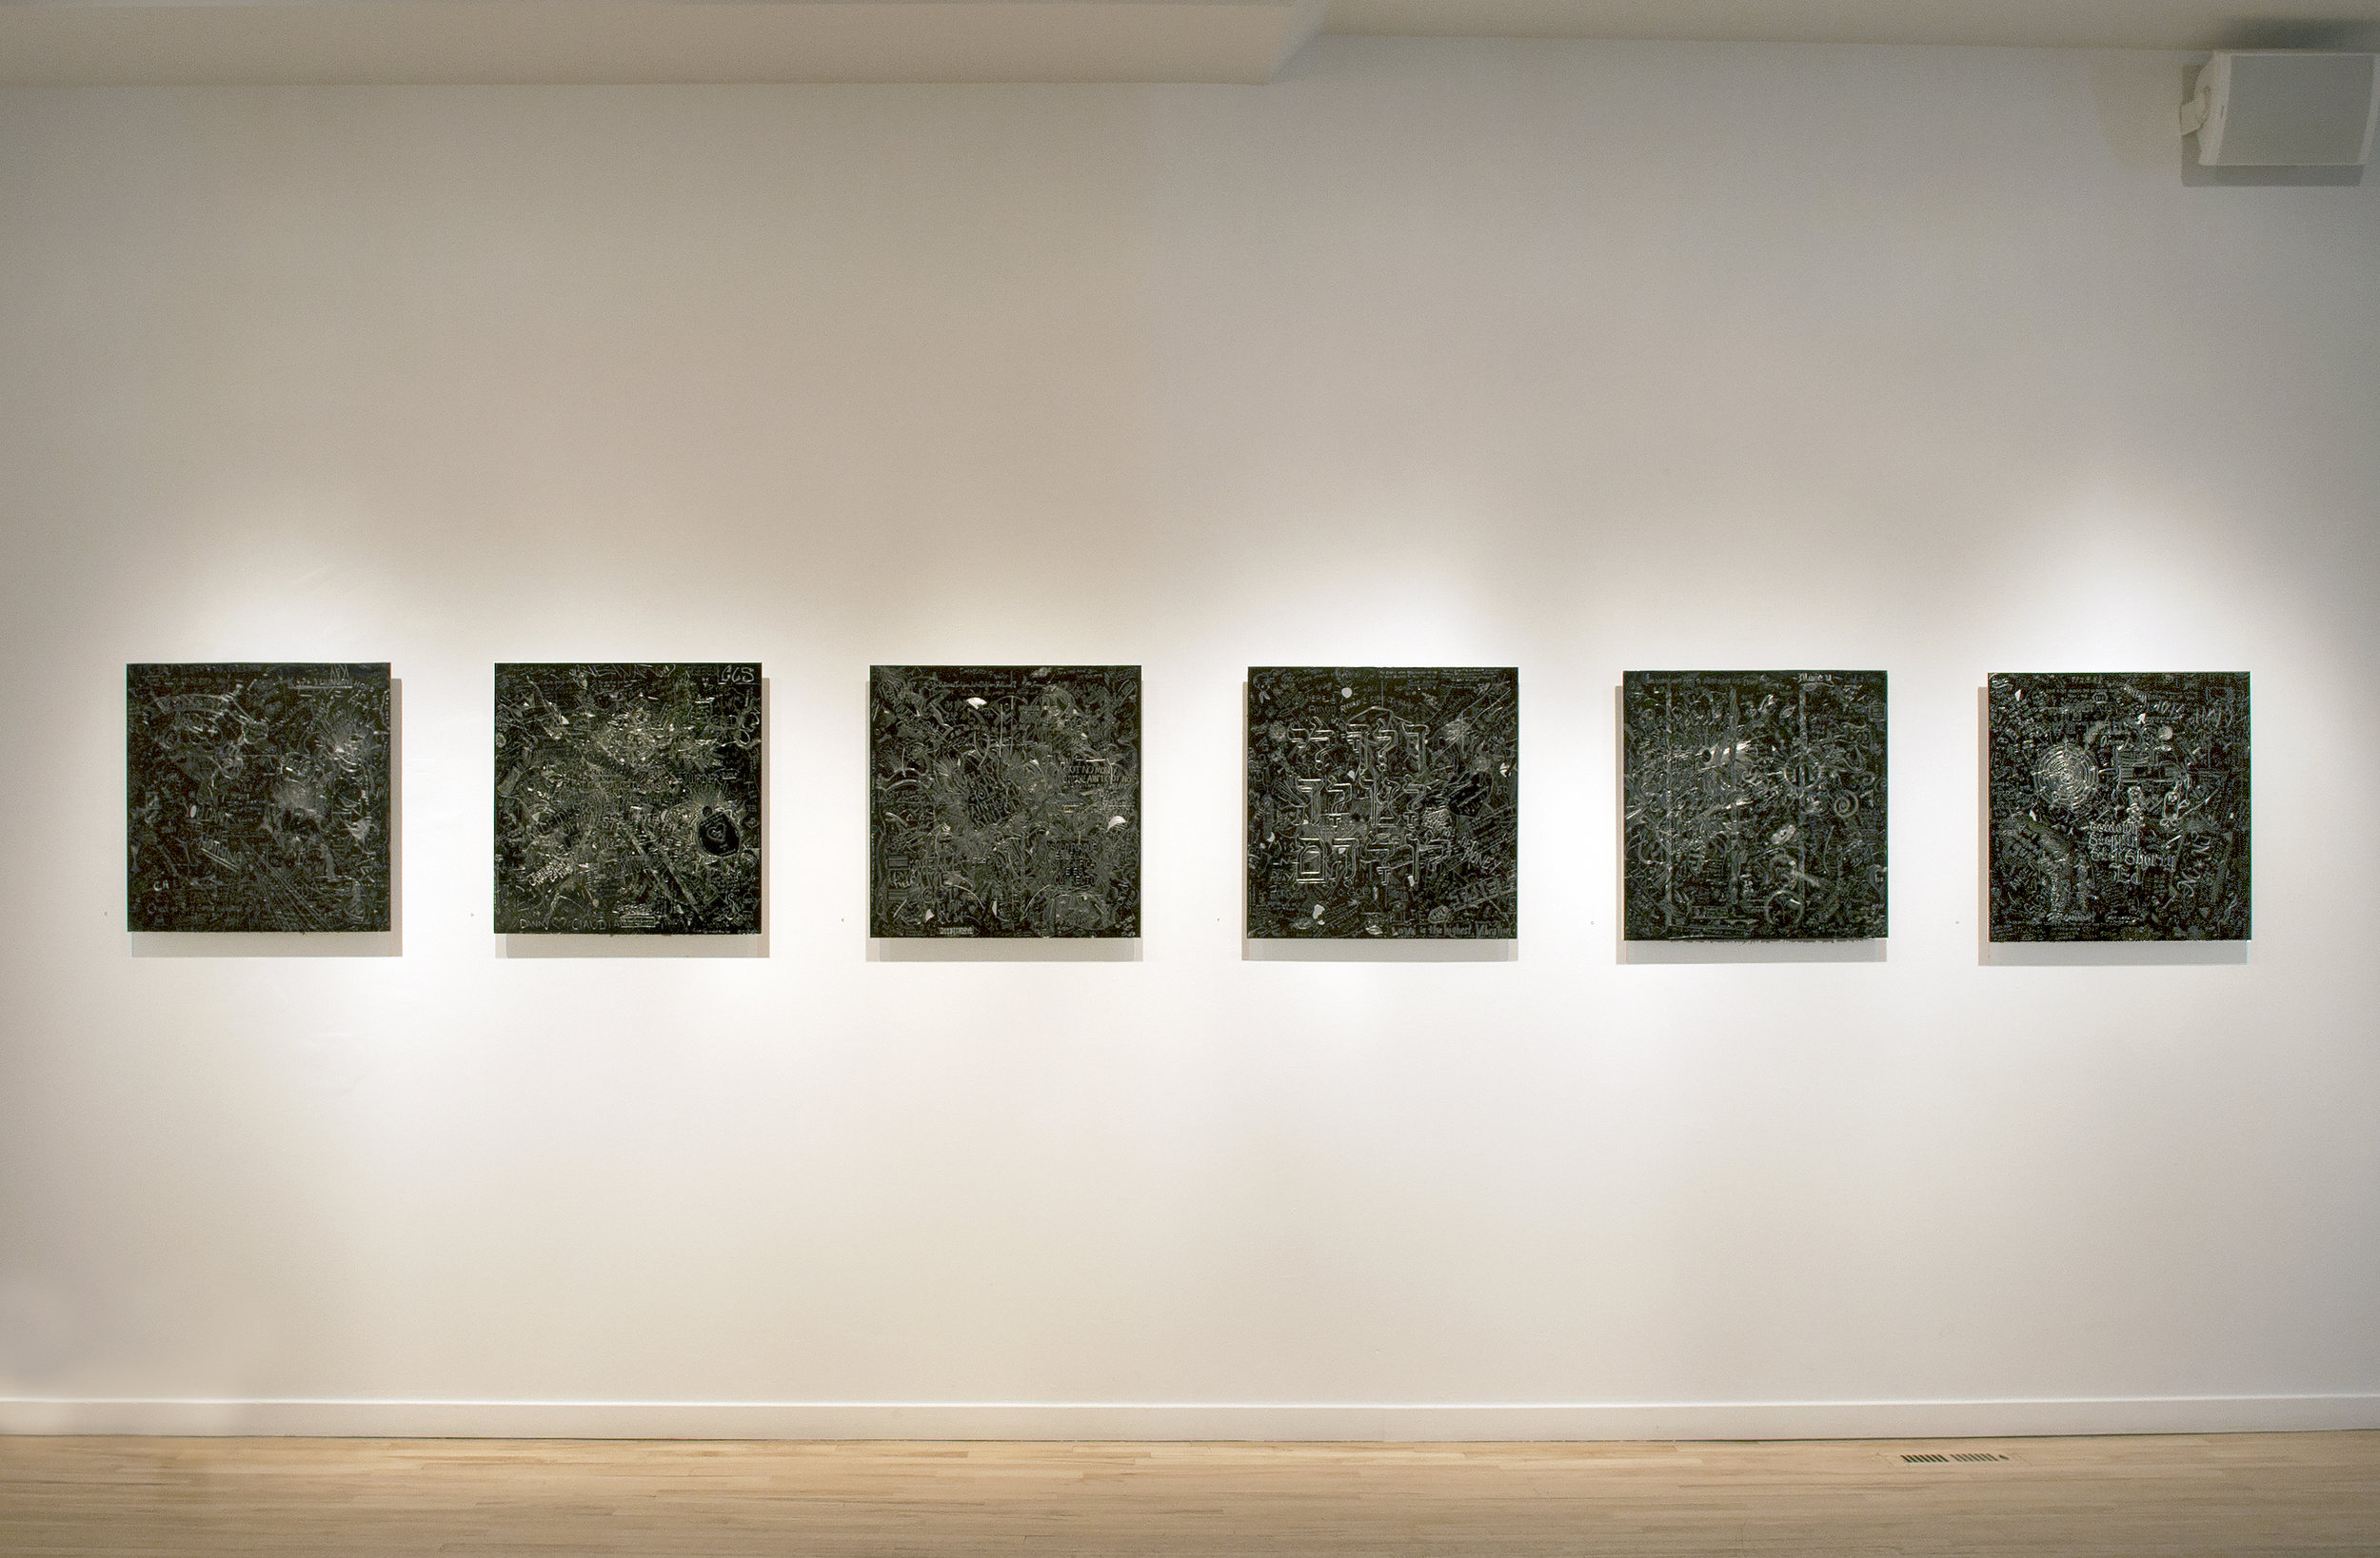 """MCA 1-6, Collaborative incised drawings on aluminum with baked enamel finis,Installation view at """"We All We Got"""", 2008"""